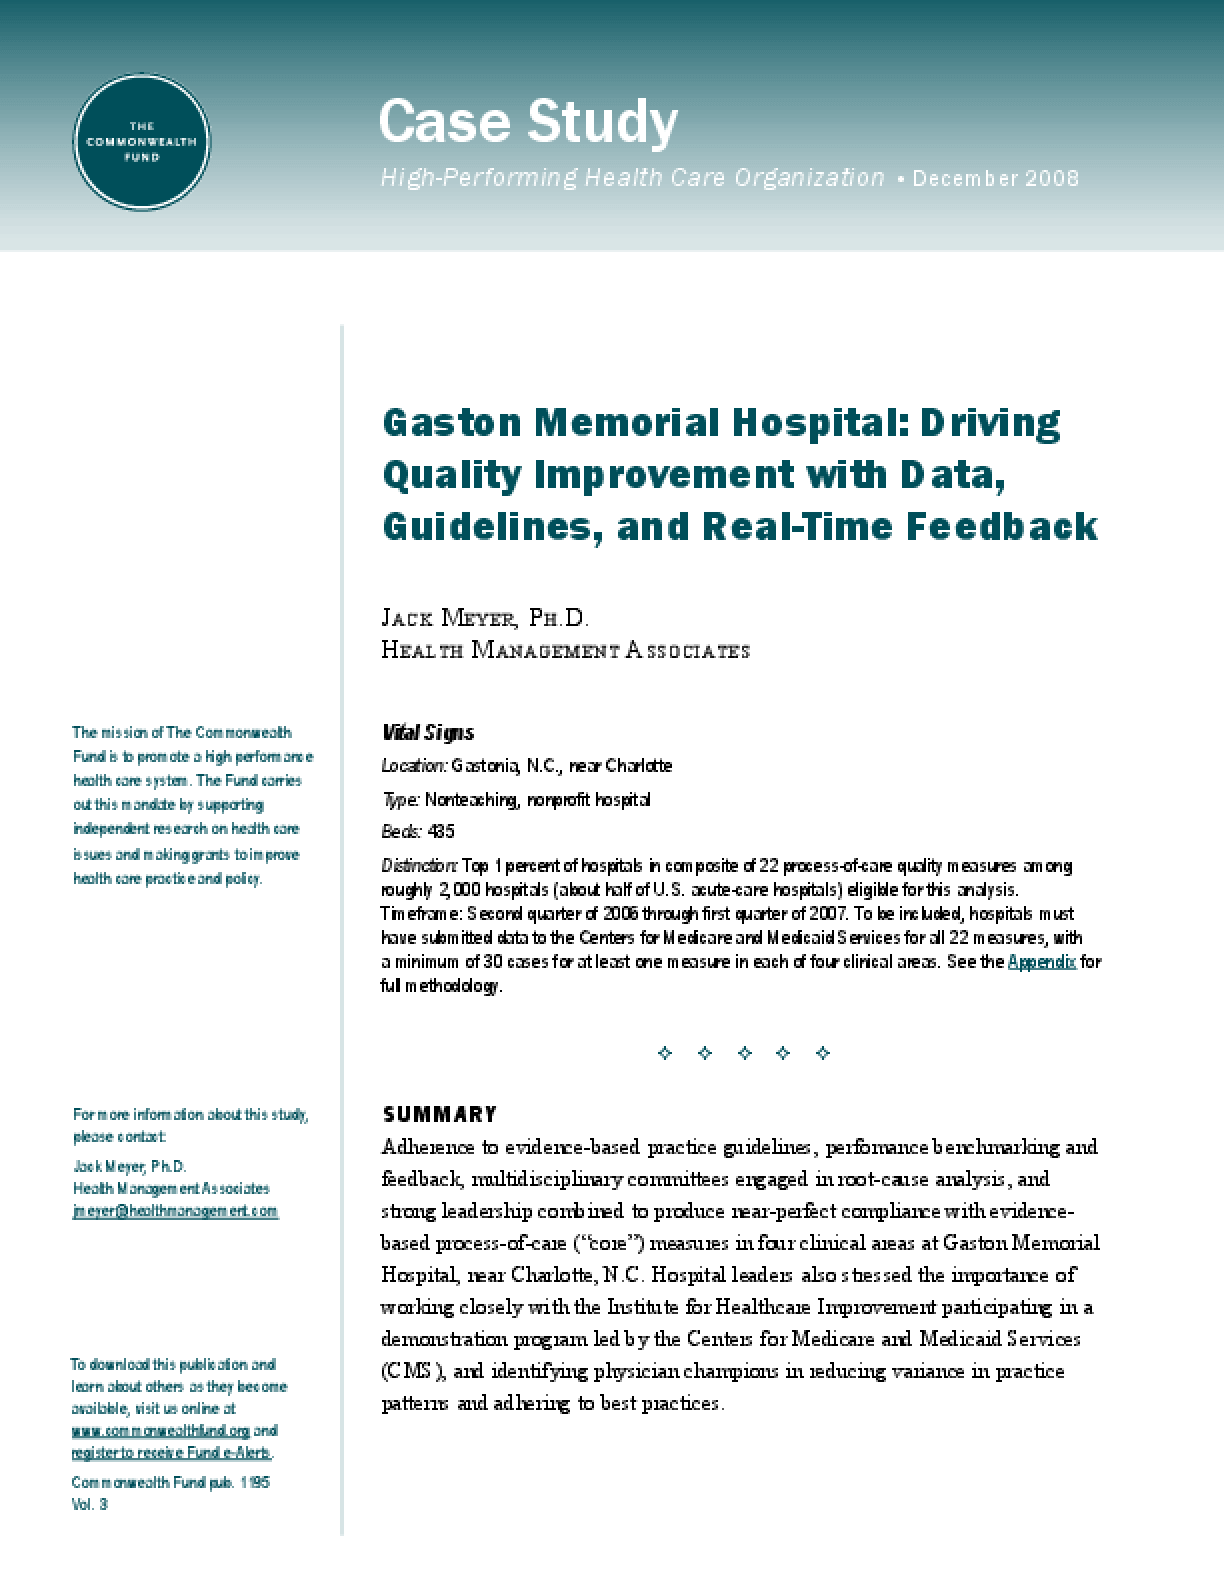 Gaston Memorial Hospital: Driving Quality Improvement With Data, Guidelines, and Real-Time Feedback